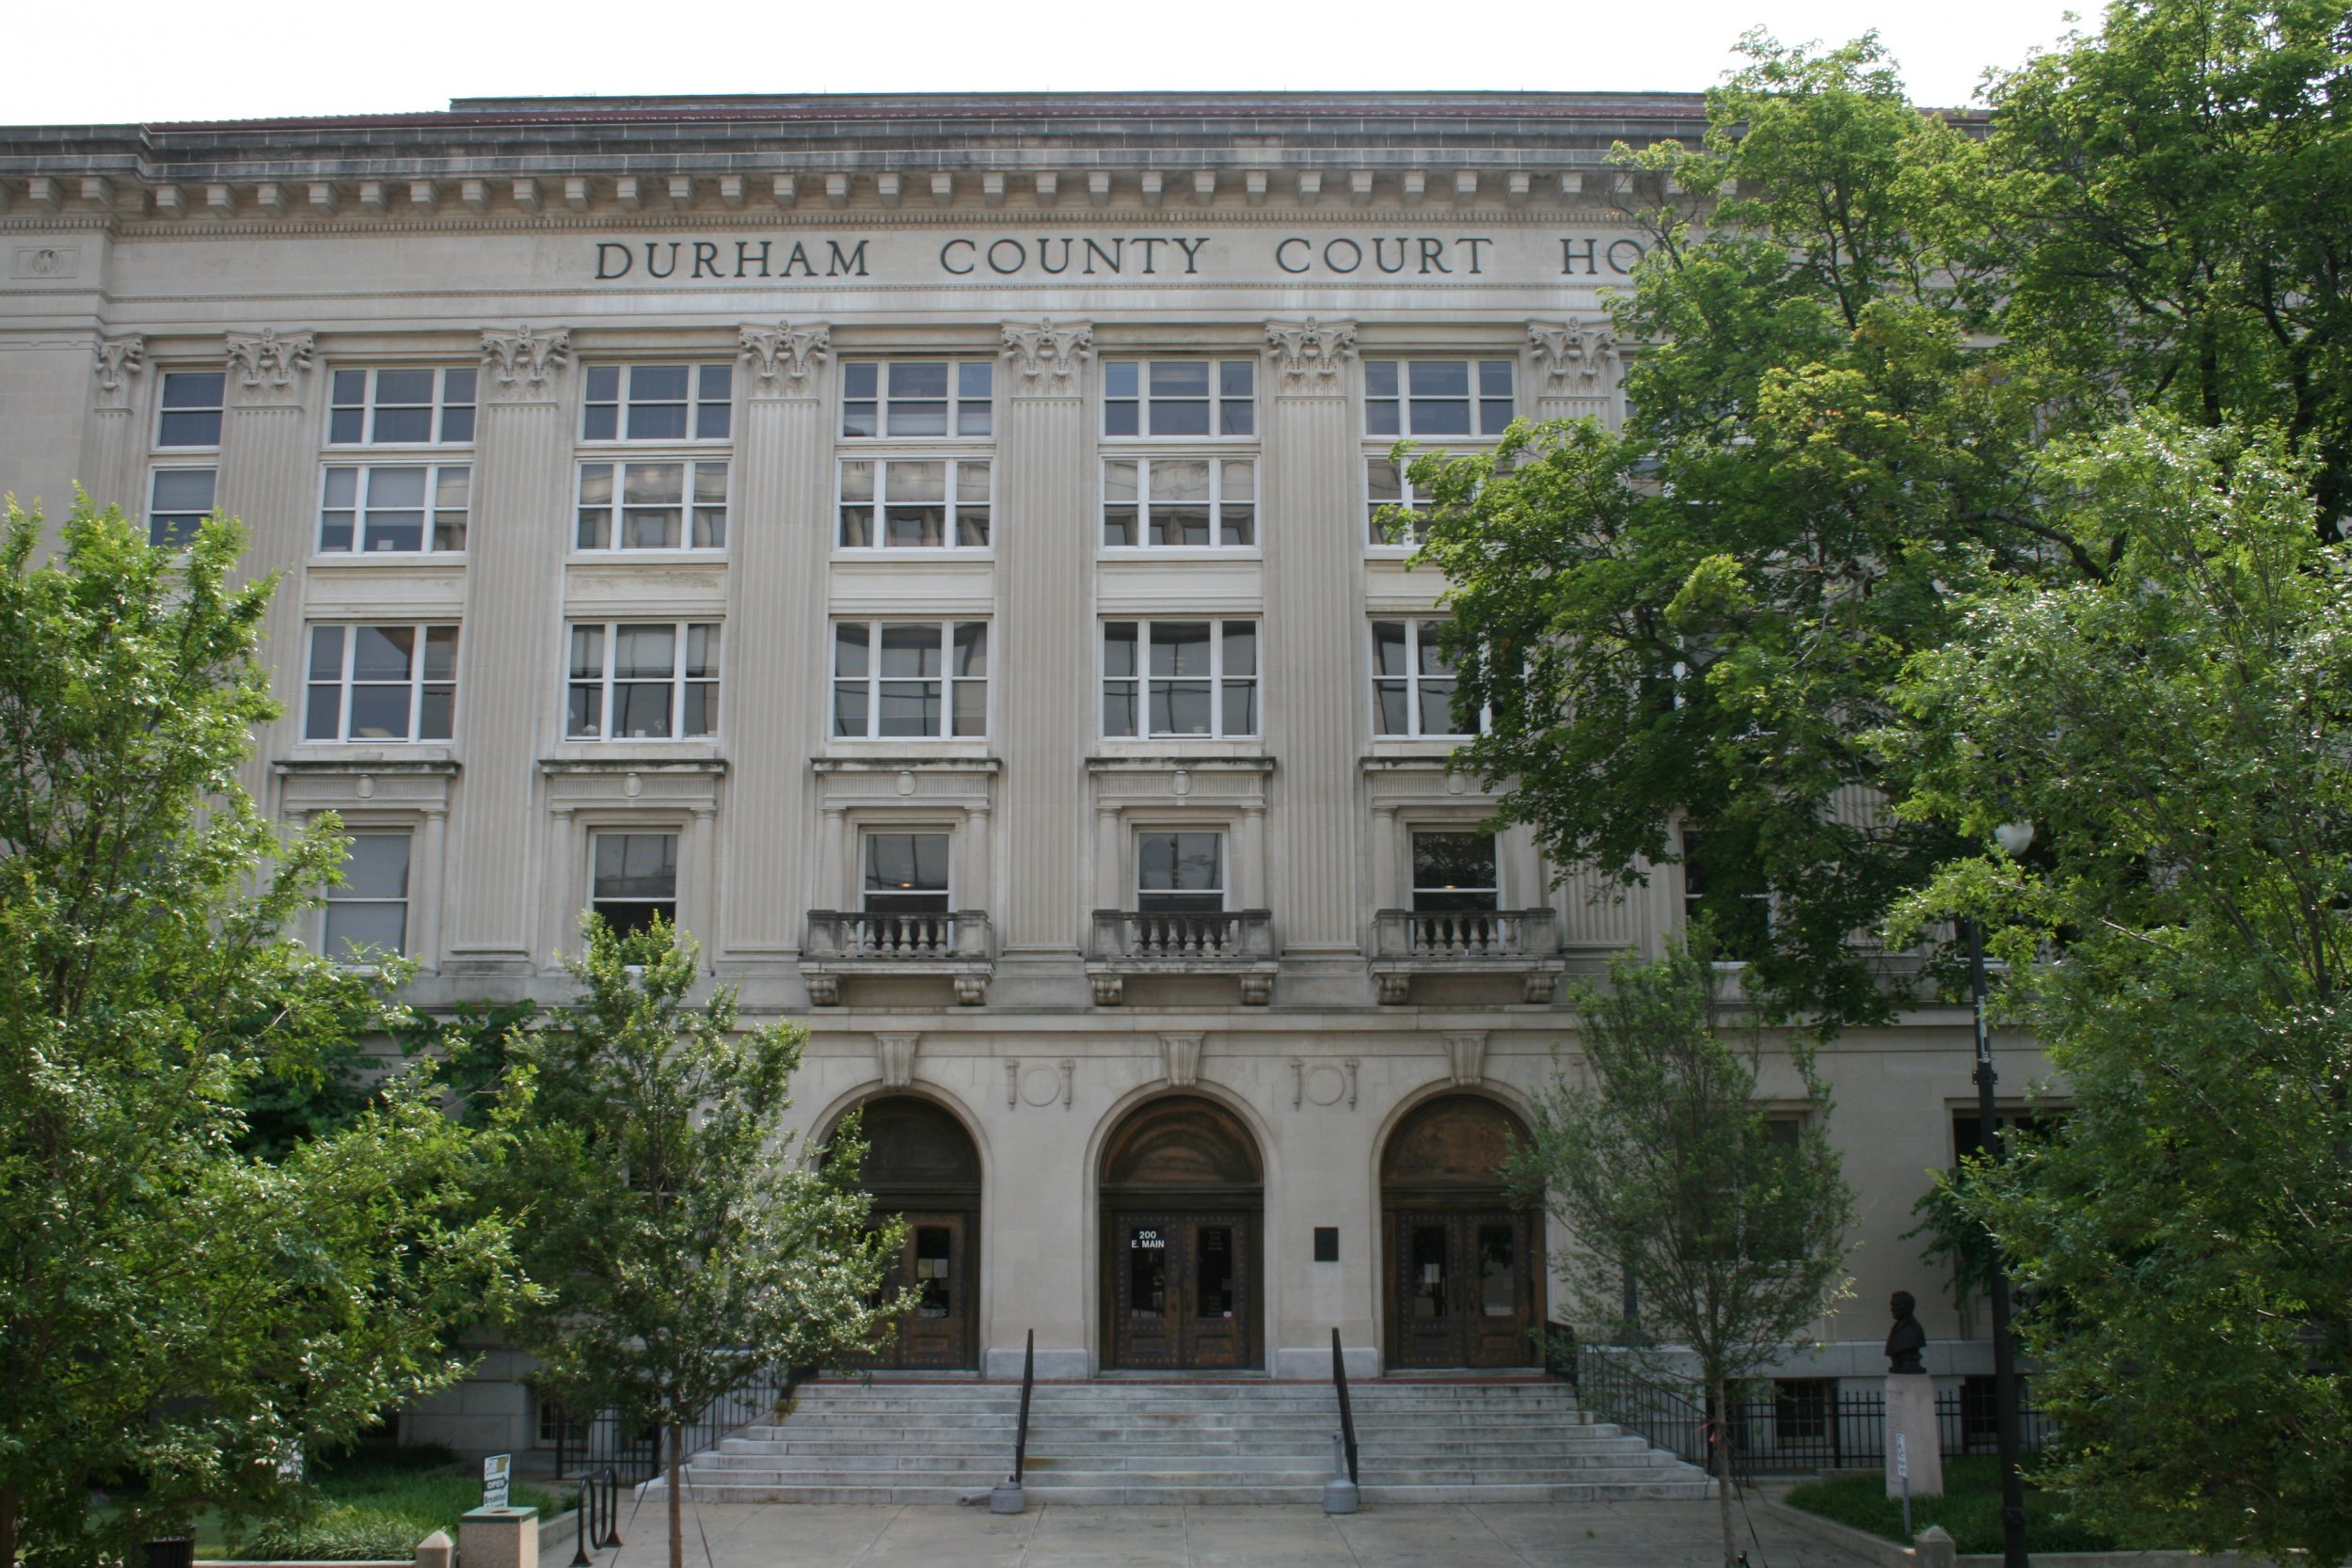 2008-07-05_Durham_County_Courthouse